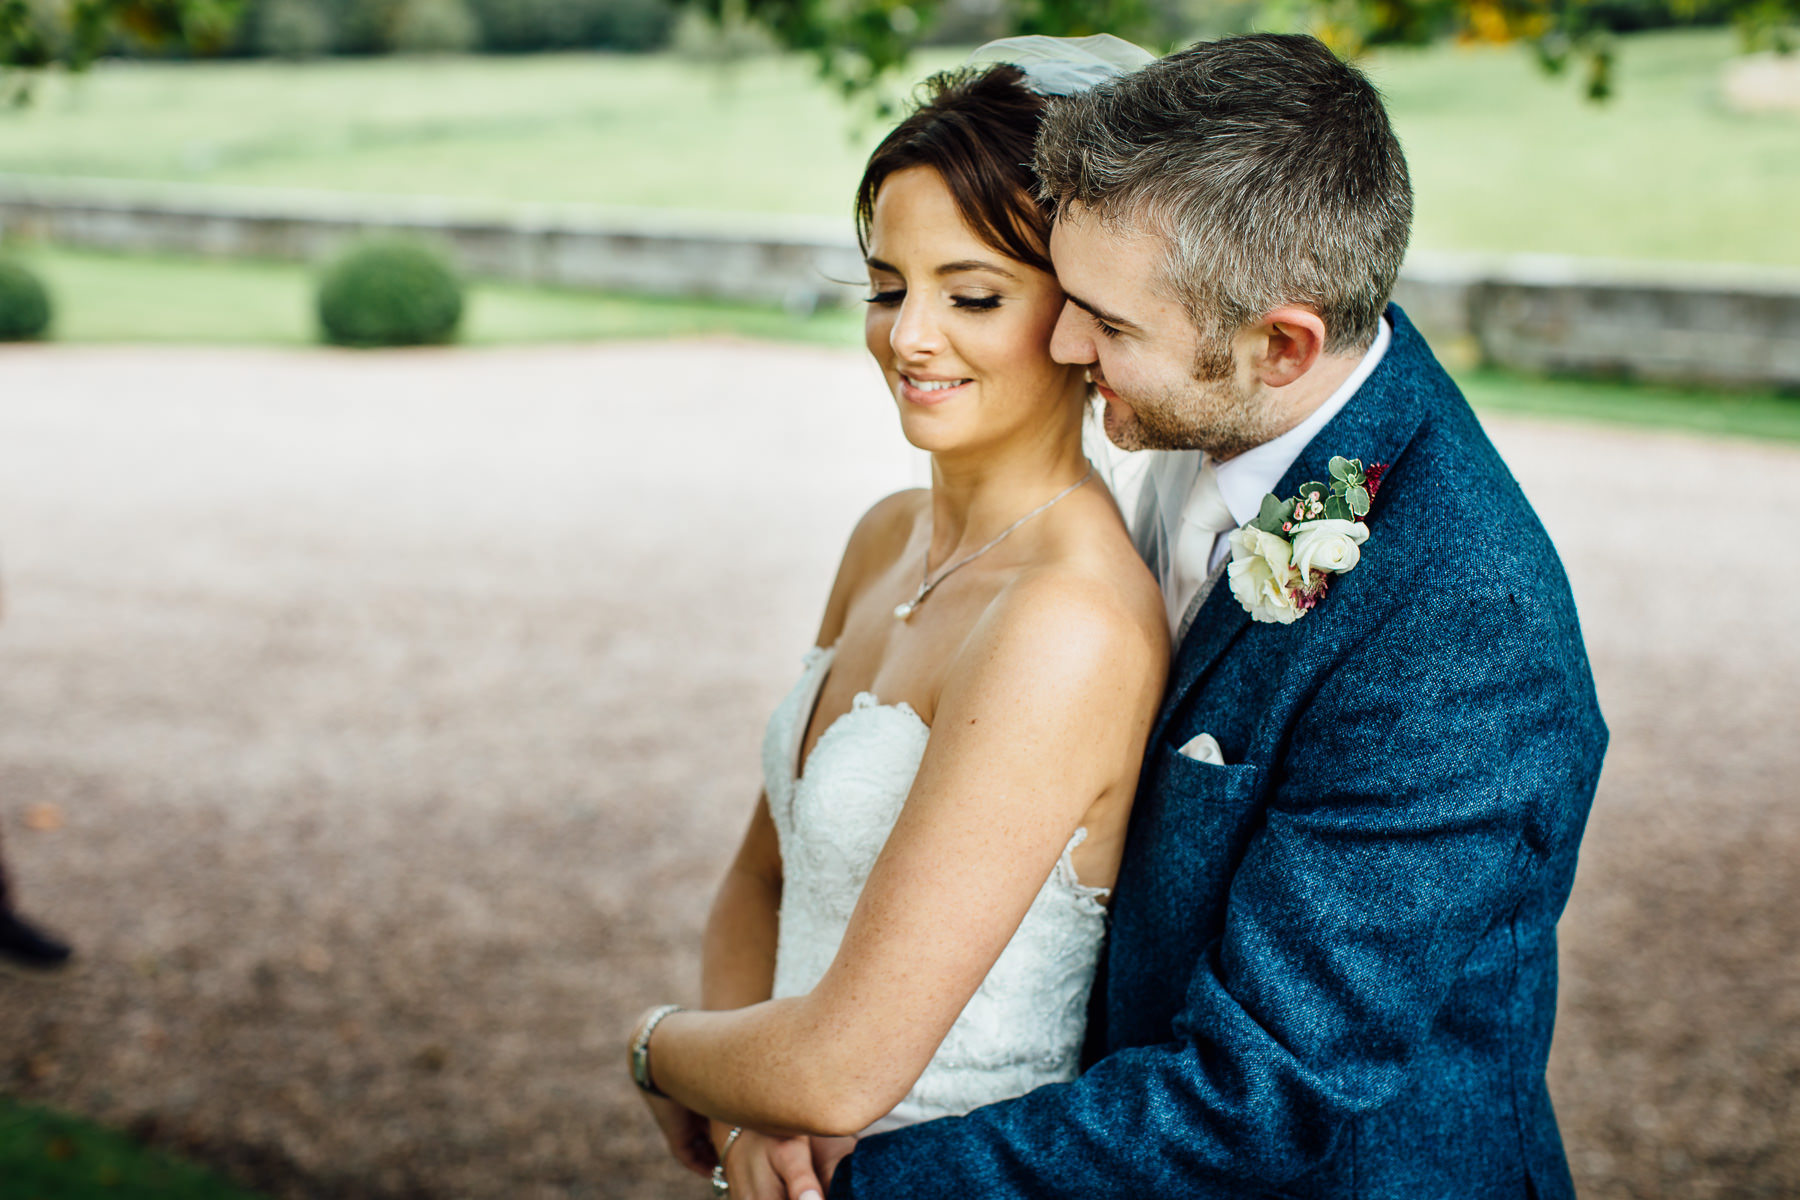 Wedding photography at Iscoyd Park